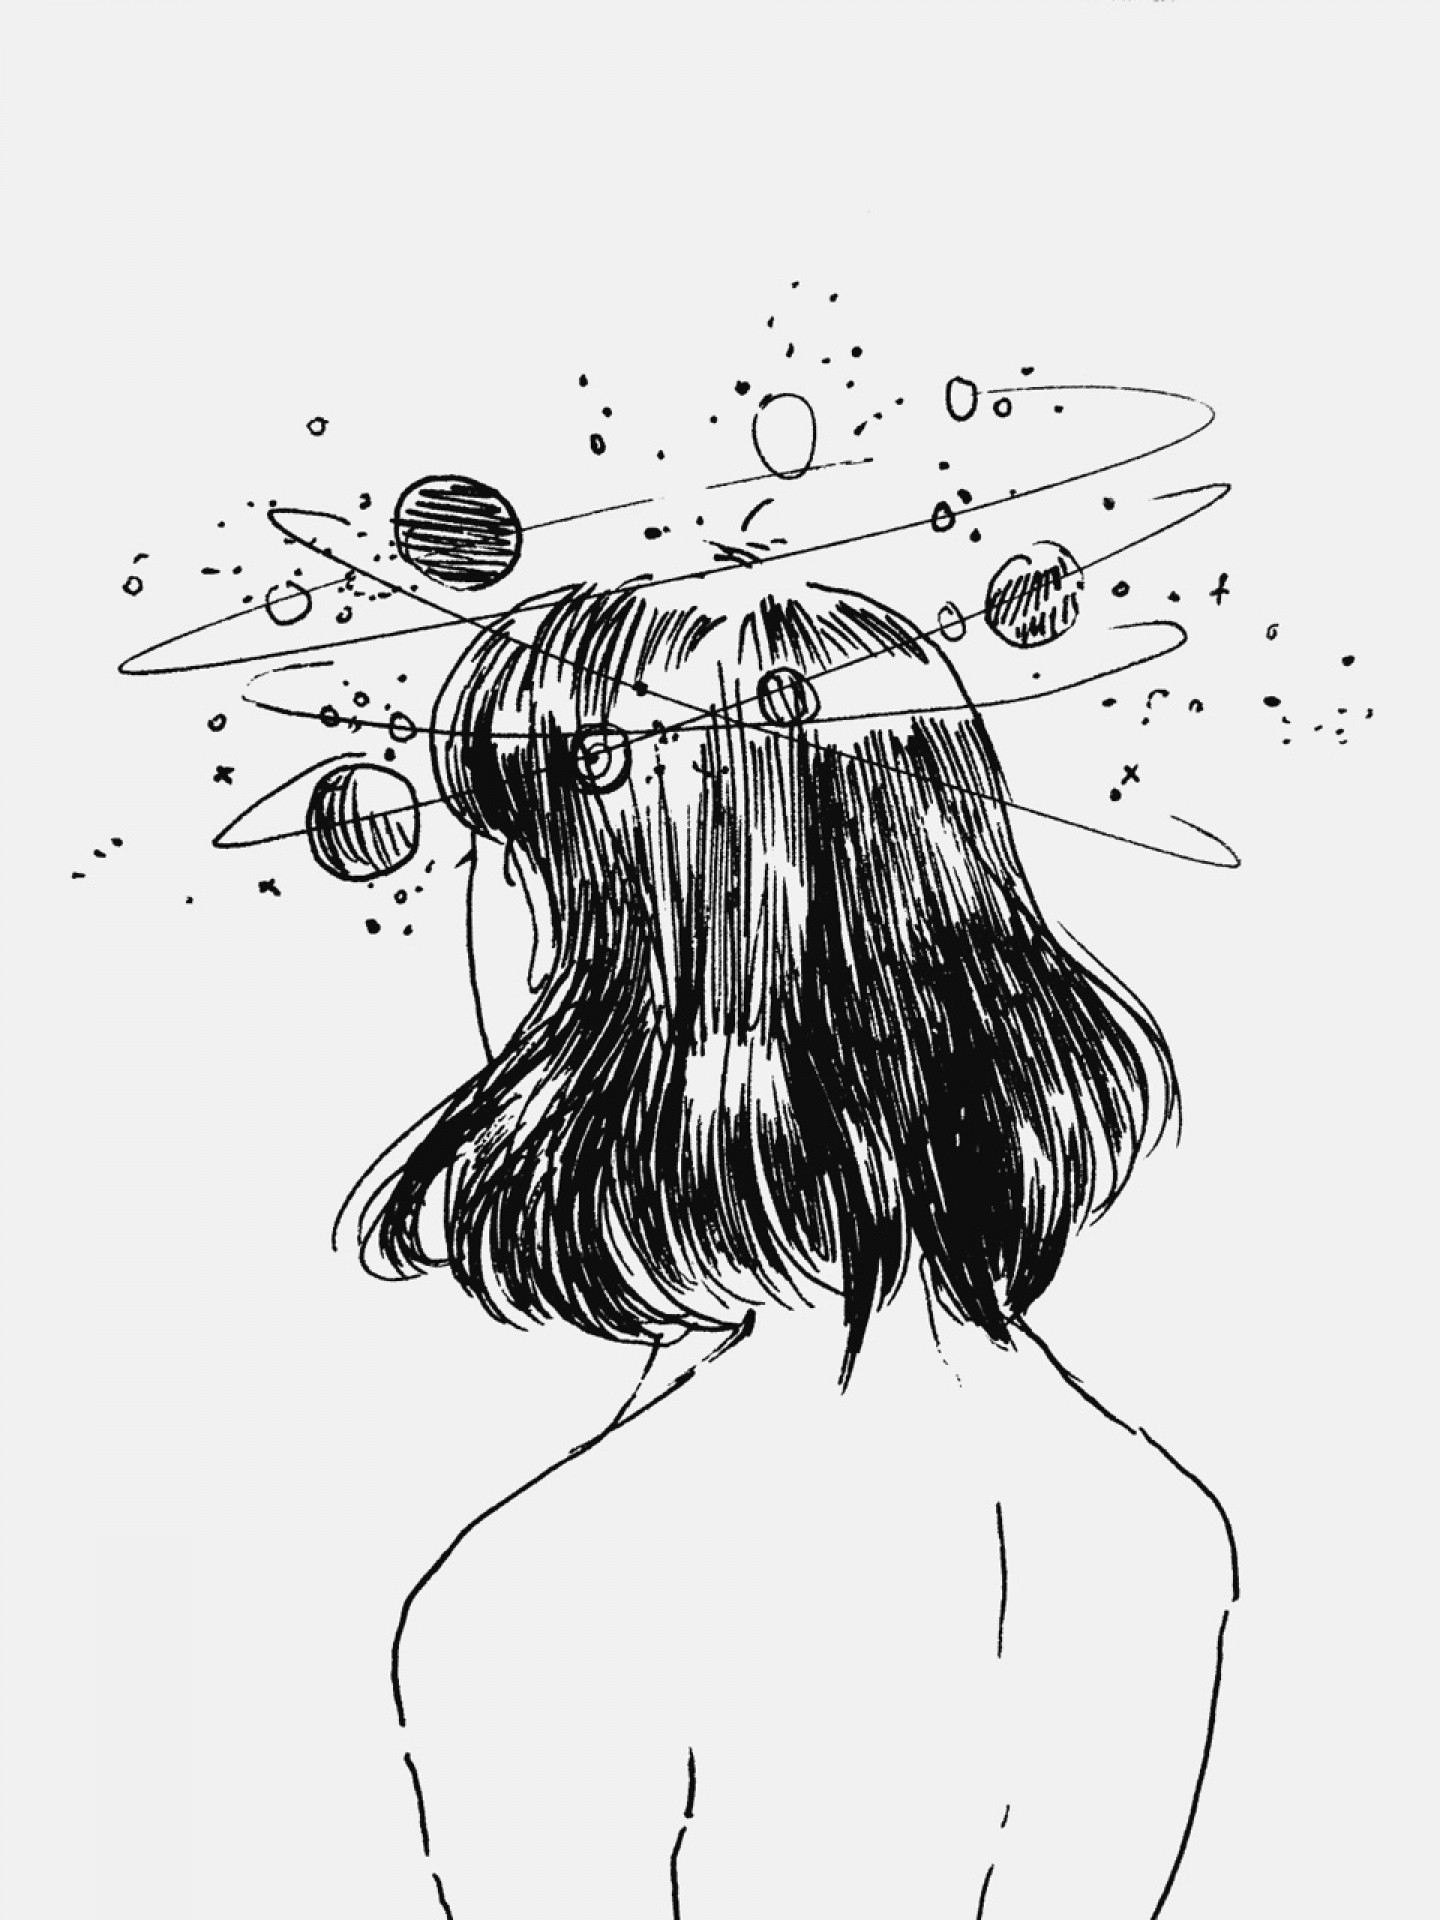 1440x1920 Tumblr Black And White Drawings Aesthetic Tumblr Backgrounds